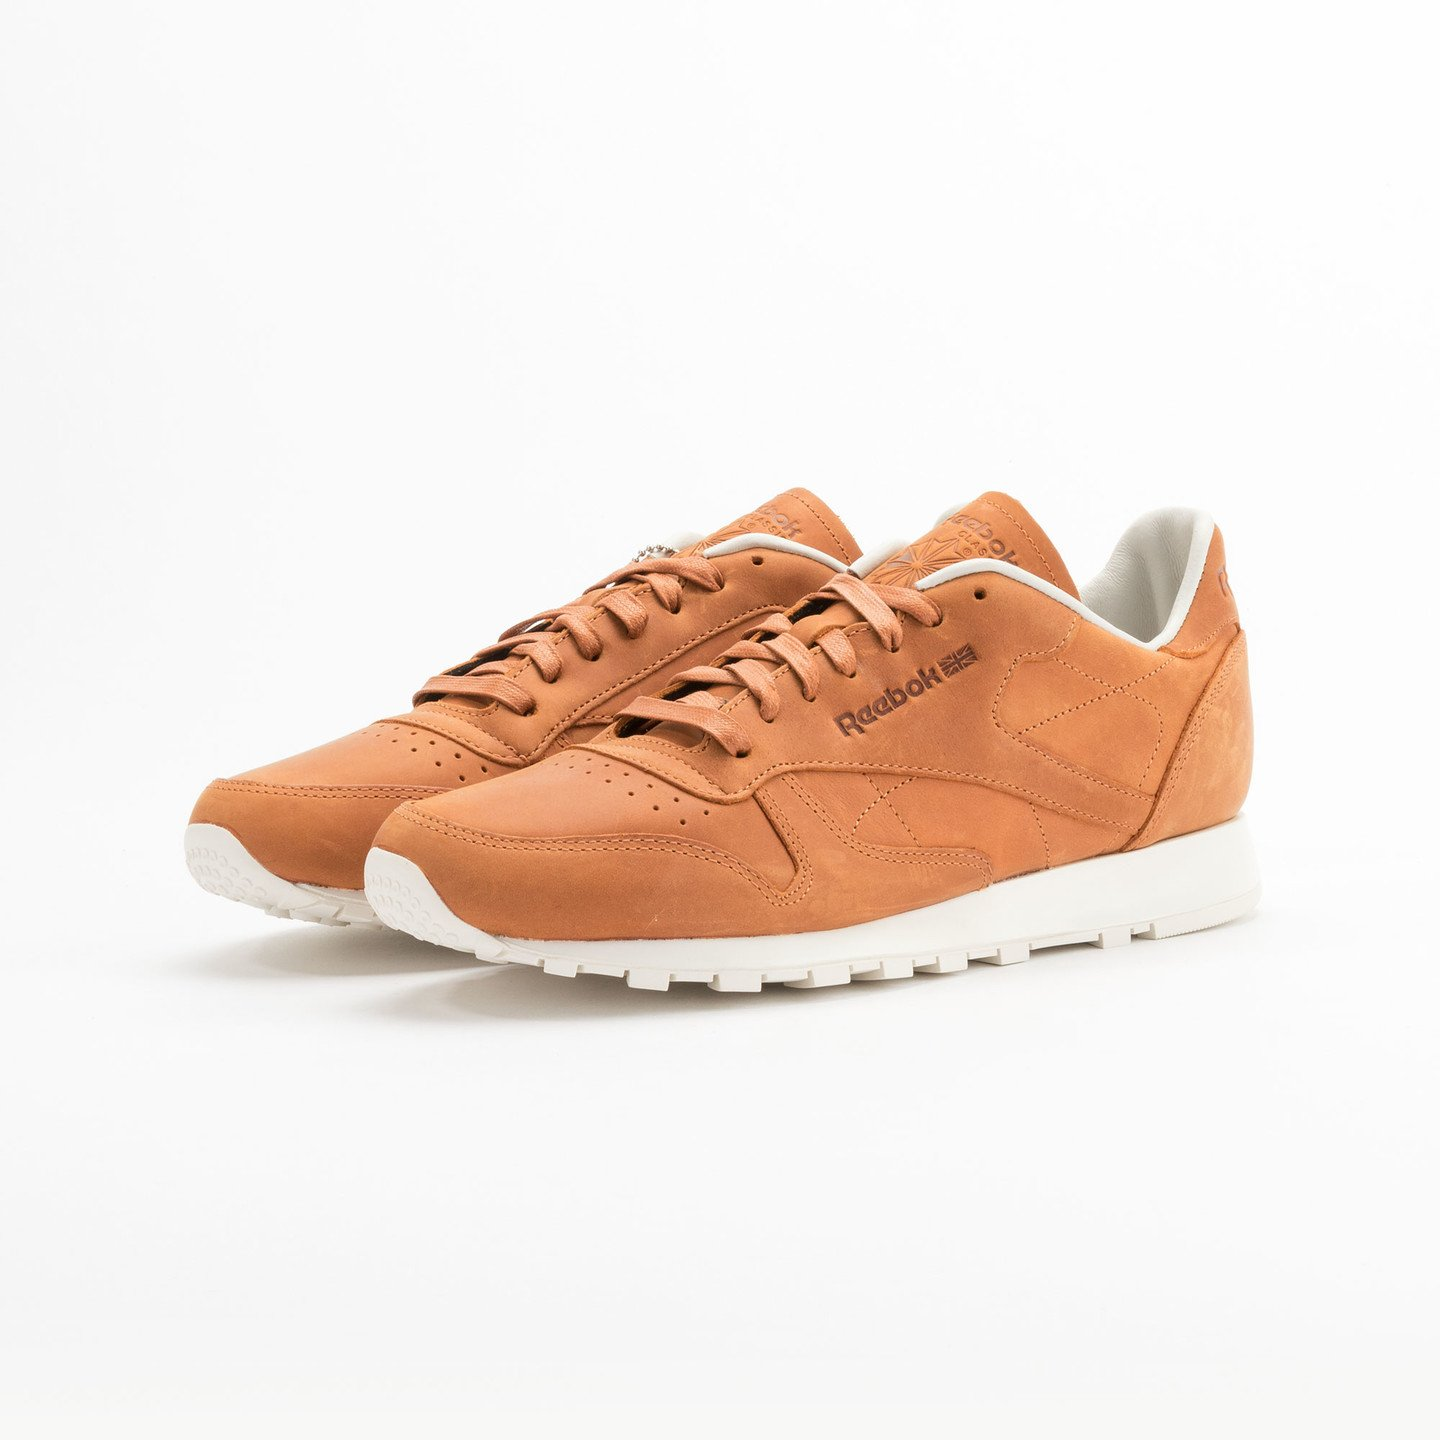 Reebok Classic Leather Lux PW Rusty / Beige / Chalk V68686-43